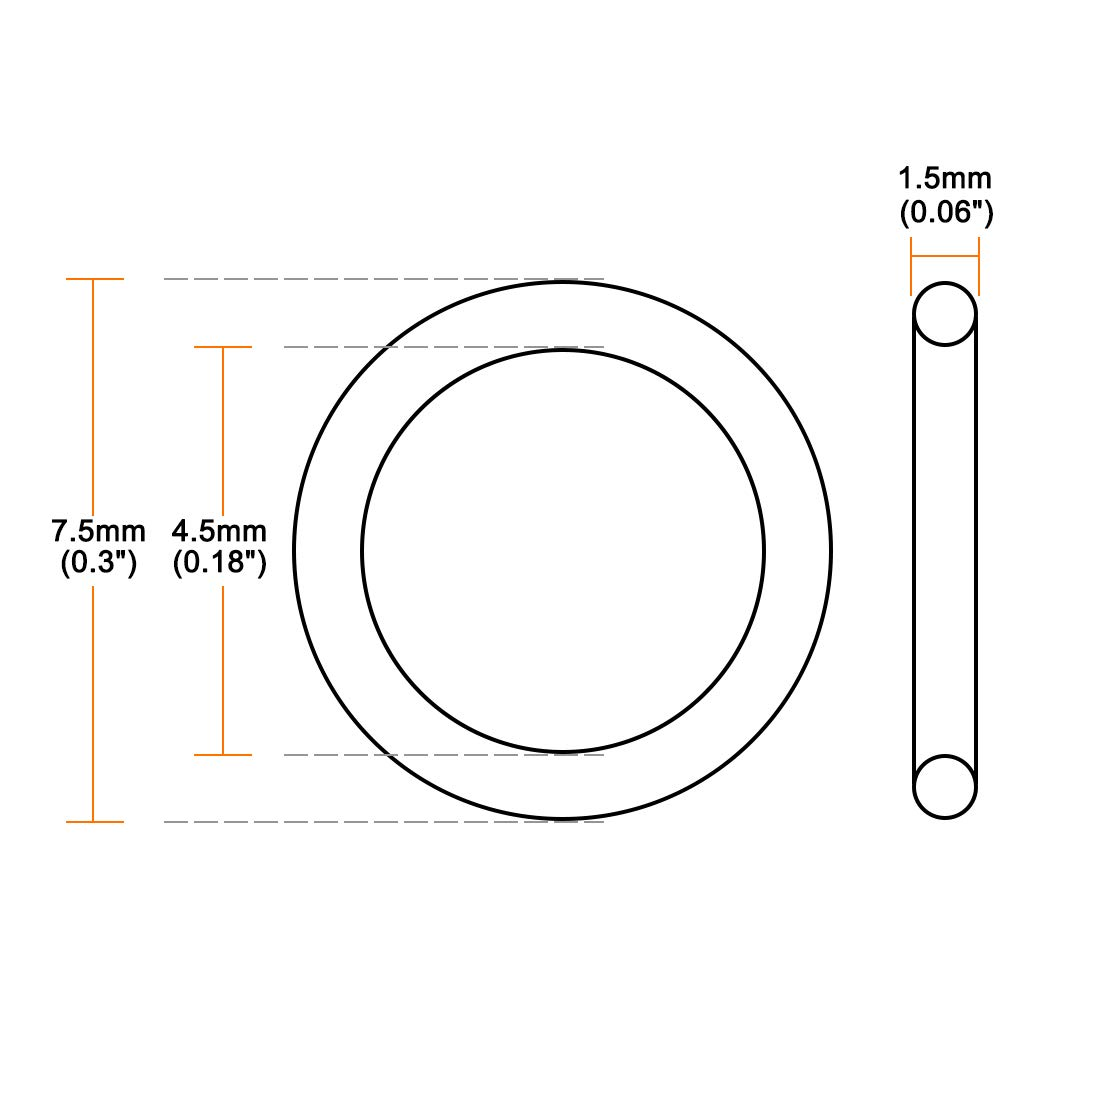 3mm Inner Diameter uxcell Silicone O-Rings 6mm OD Seal Gasket White 30Pcs 1.5mm Width